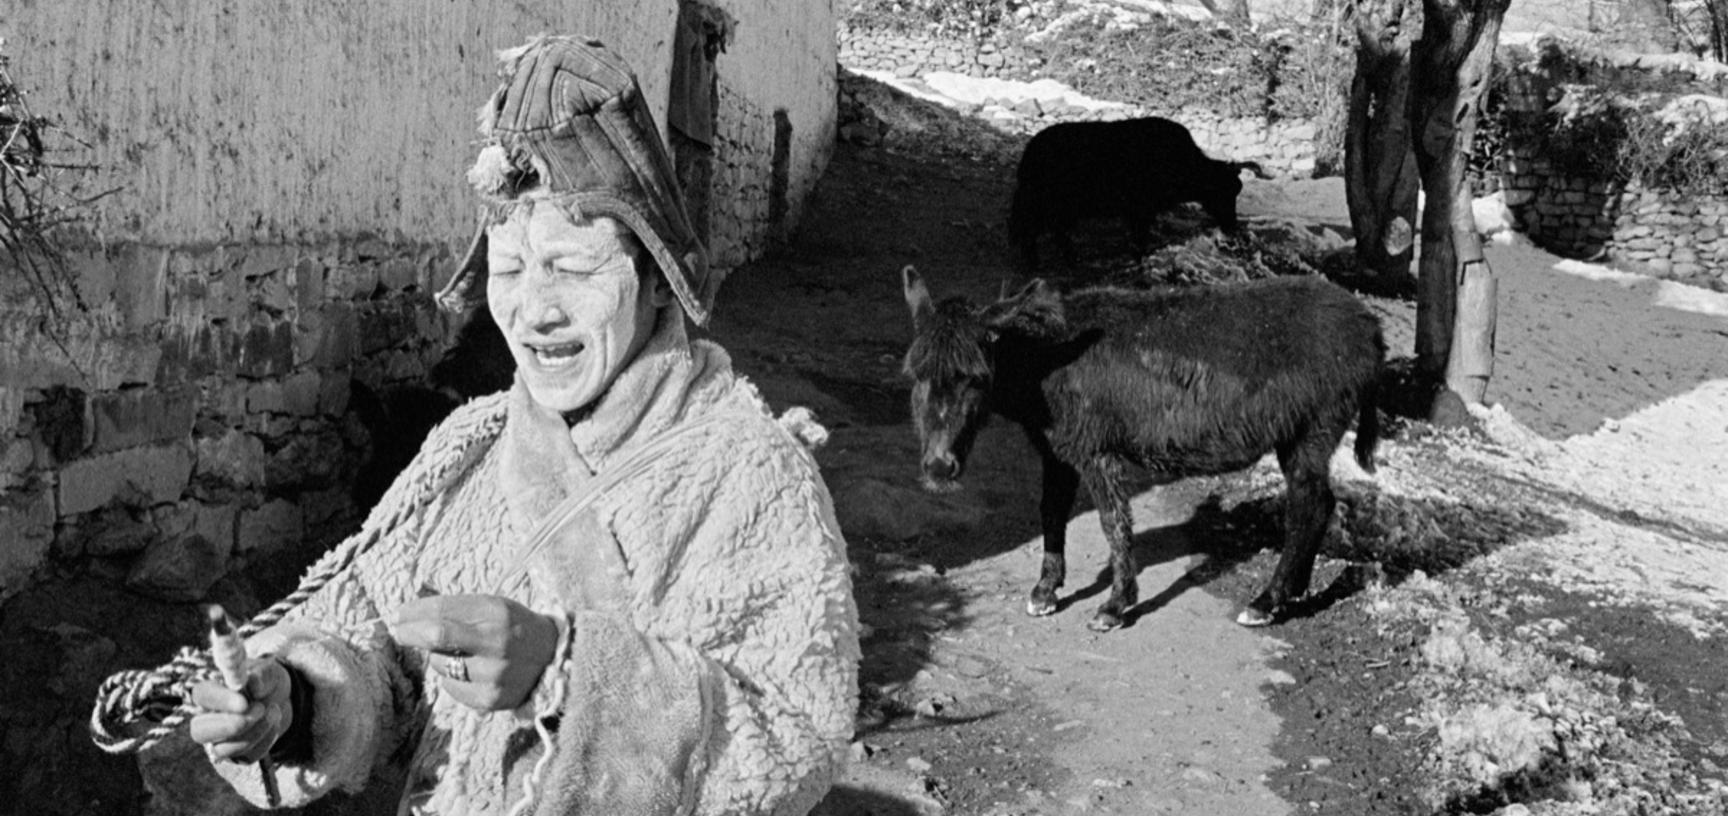 Pema Namgyal in the role of Lugsi the shepherd during a stone breaking ceremony. Photograph by Patrick Sutherland. Lara, Spiti, Himachal Pradesh, India. 2004.